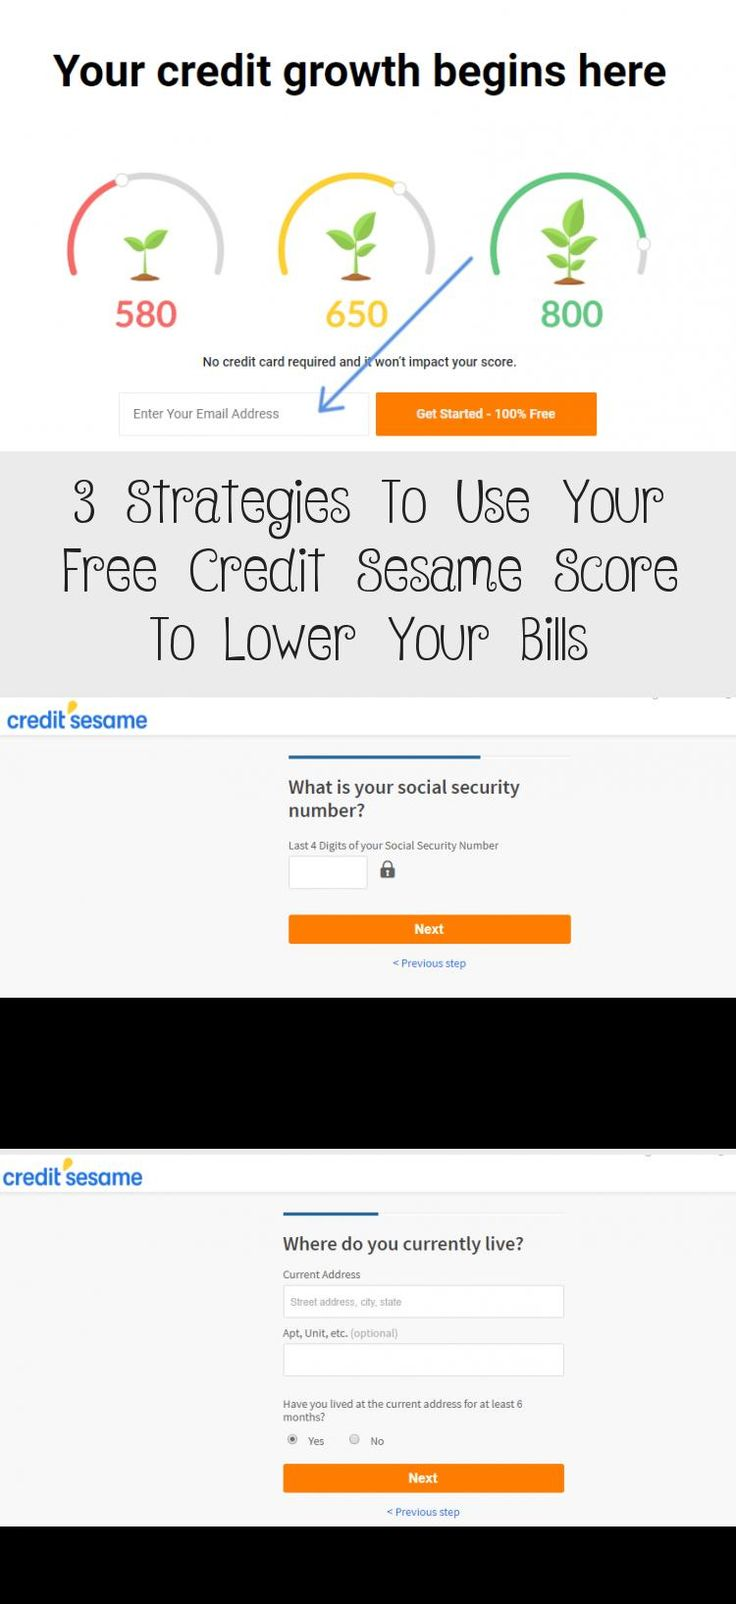 3 strategies to use your free credit sesame score to lower